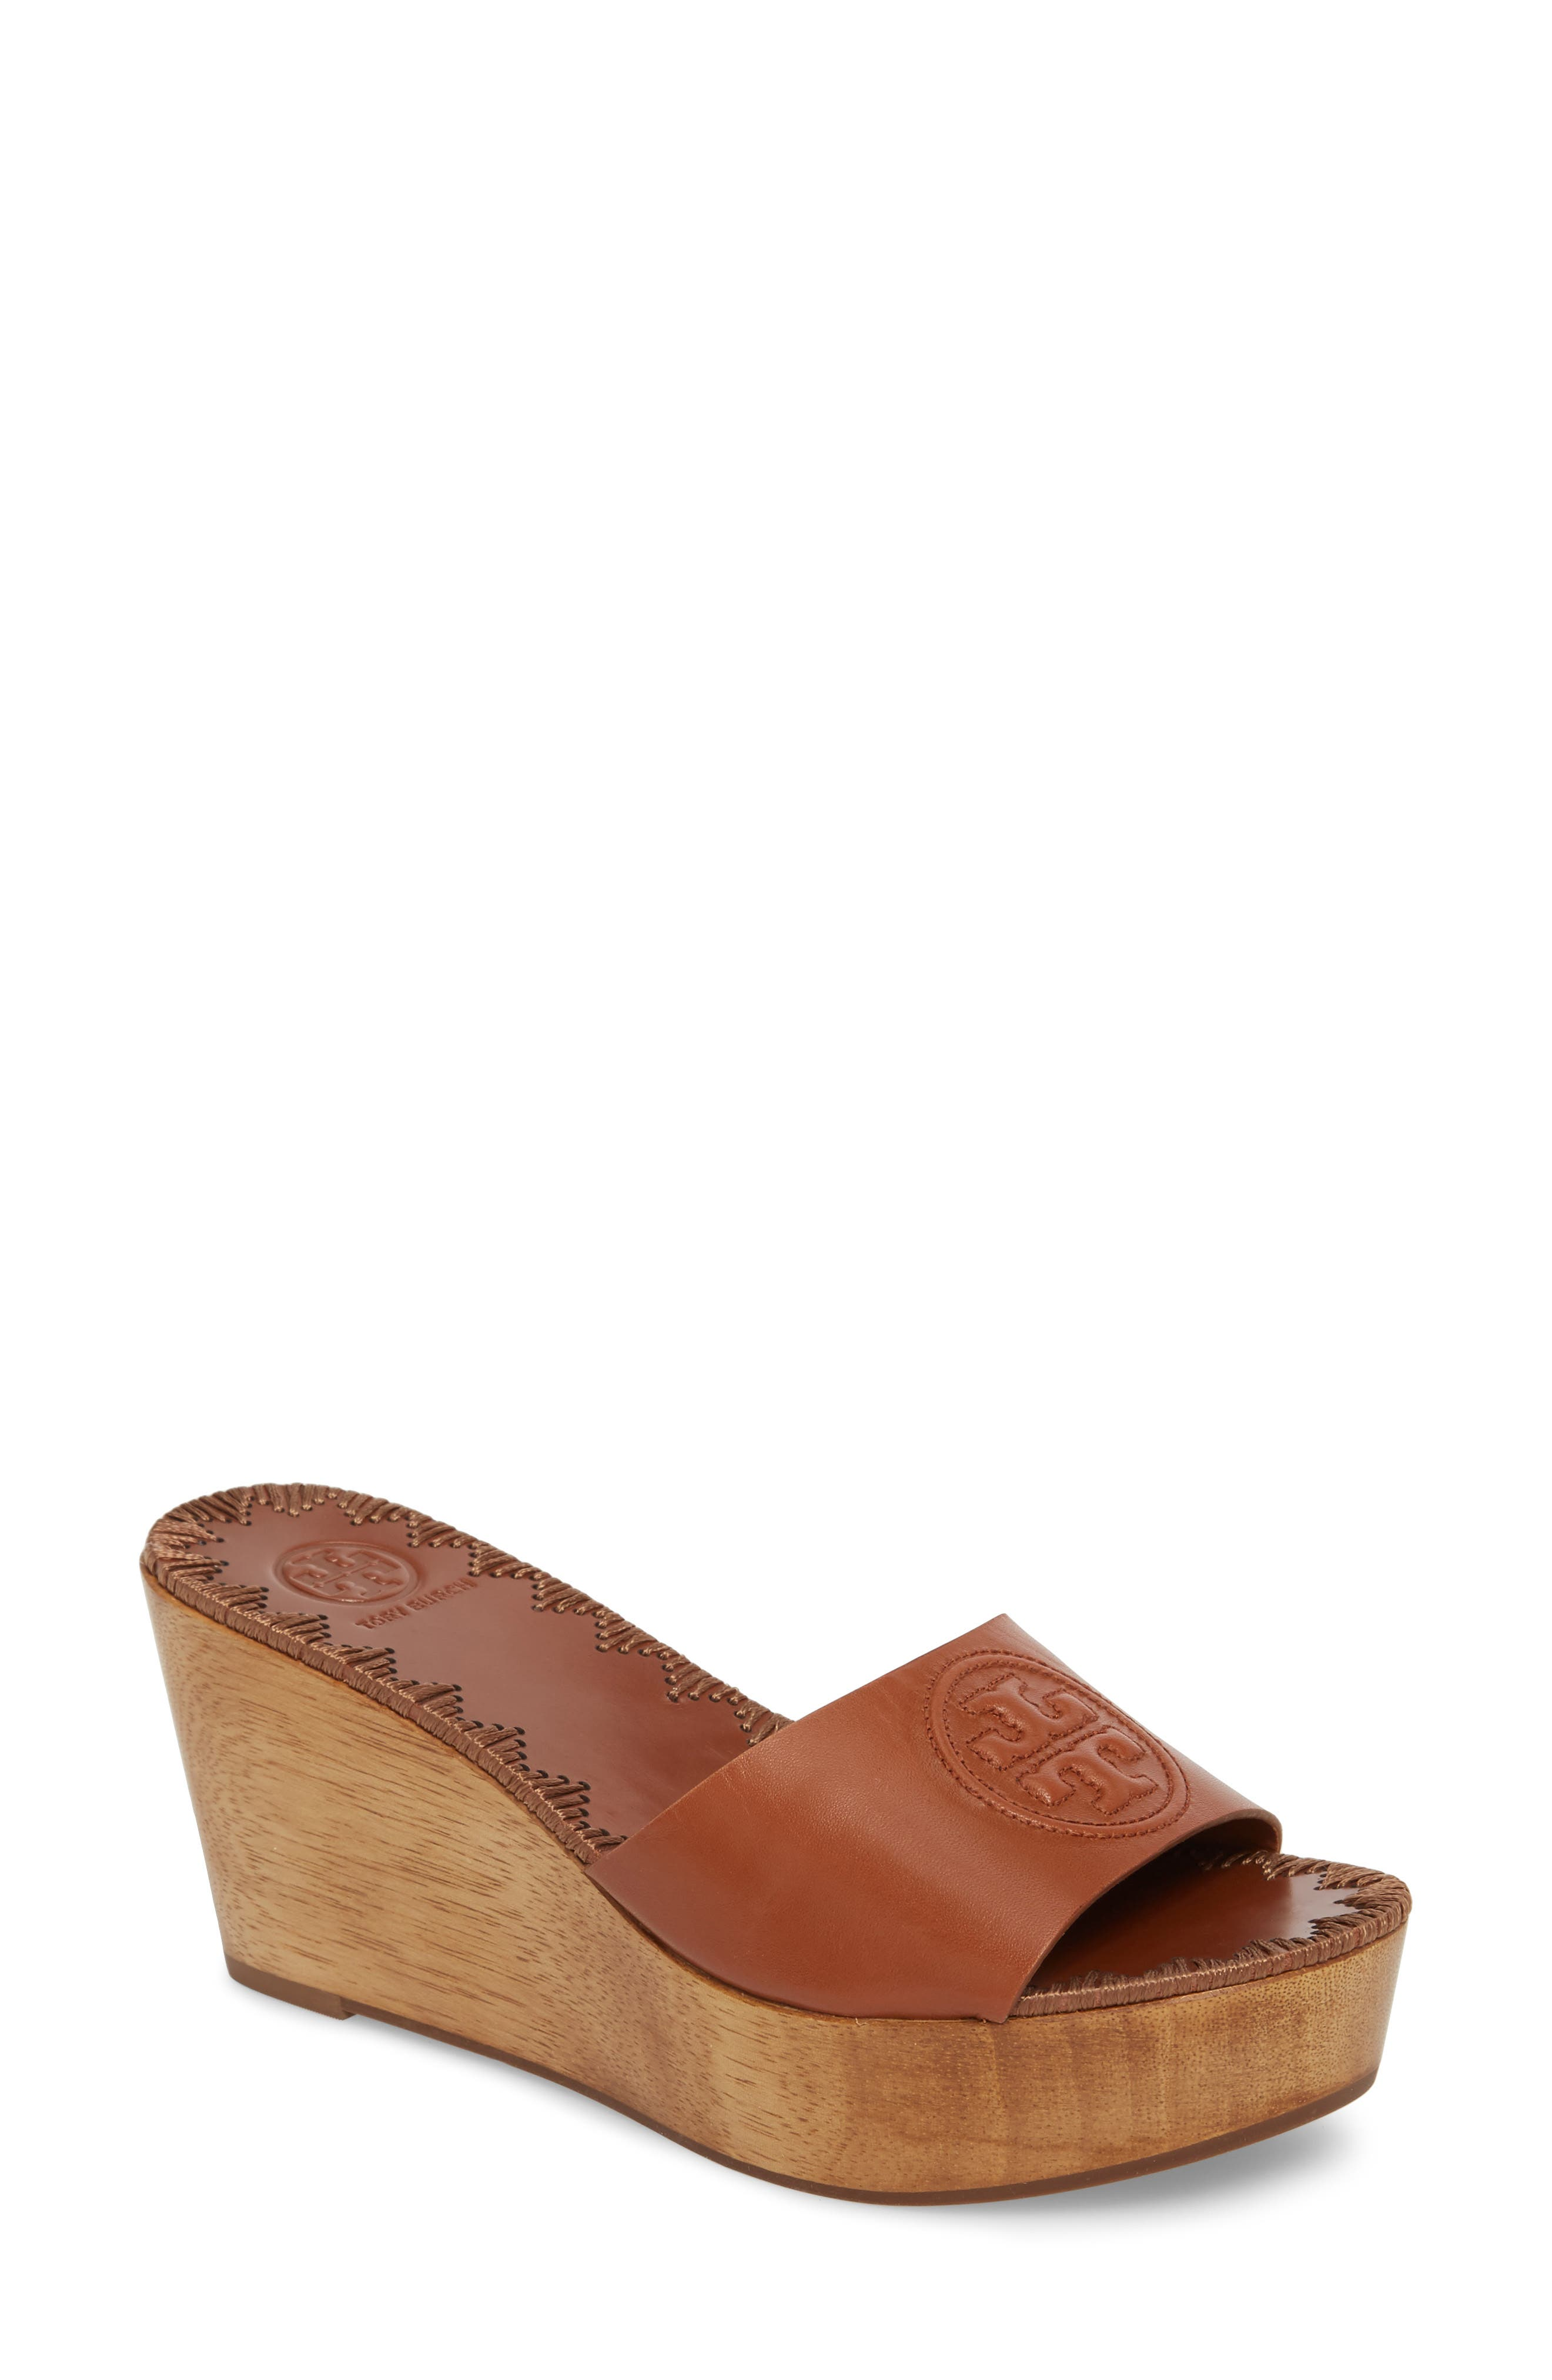 Patty Logo Platform Wedge Sandal,                         Main,                         color, Perfect Cuoio